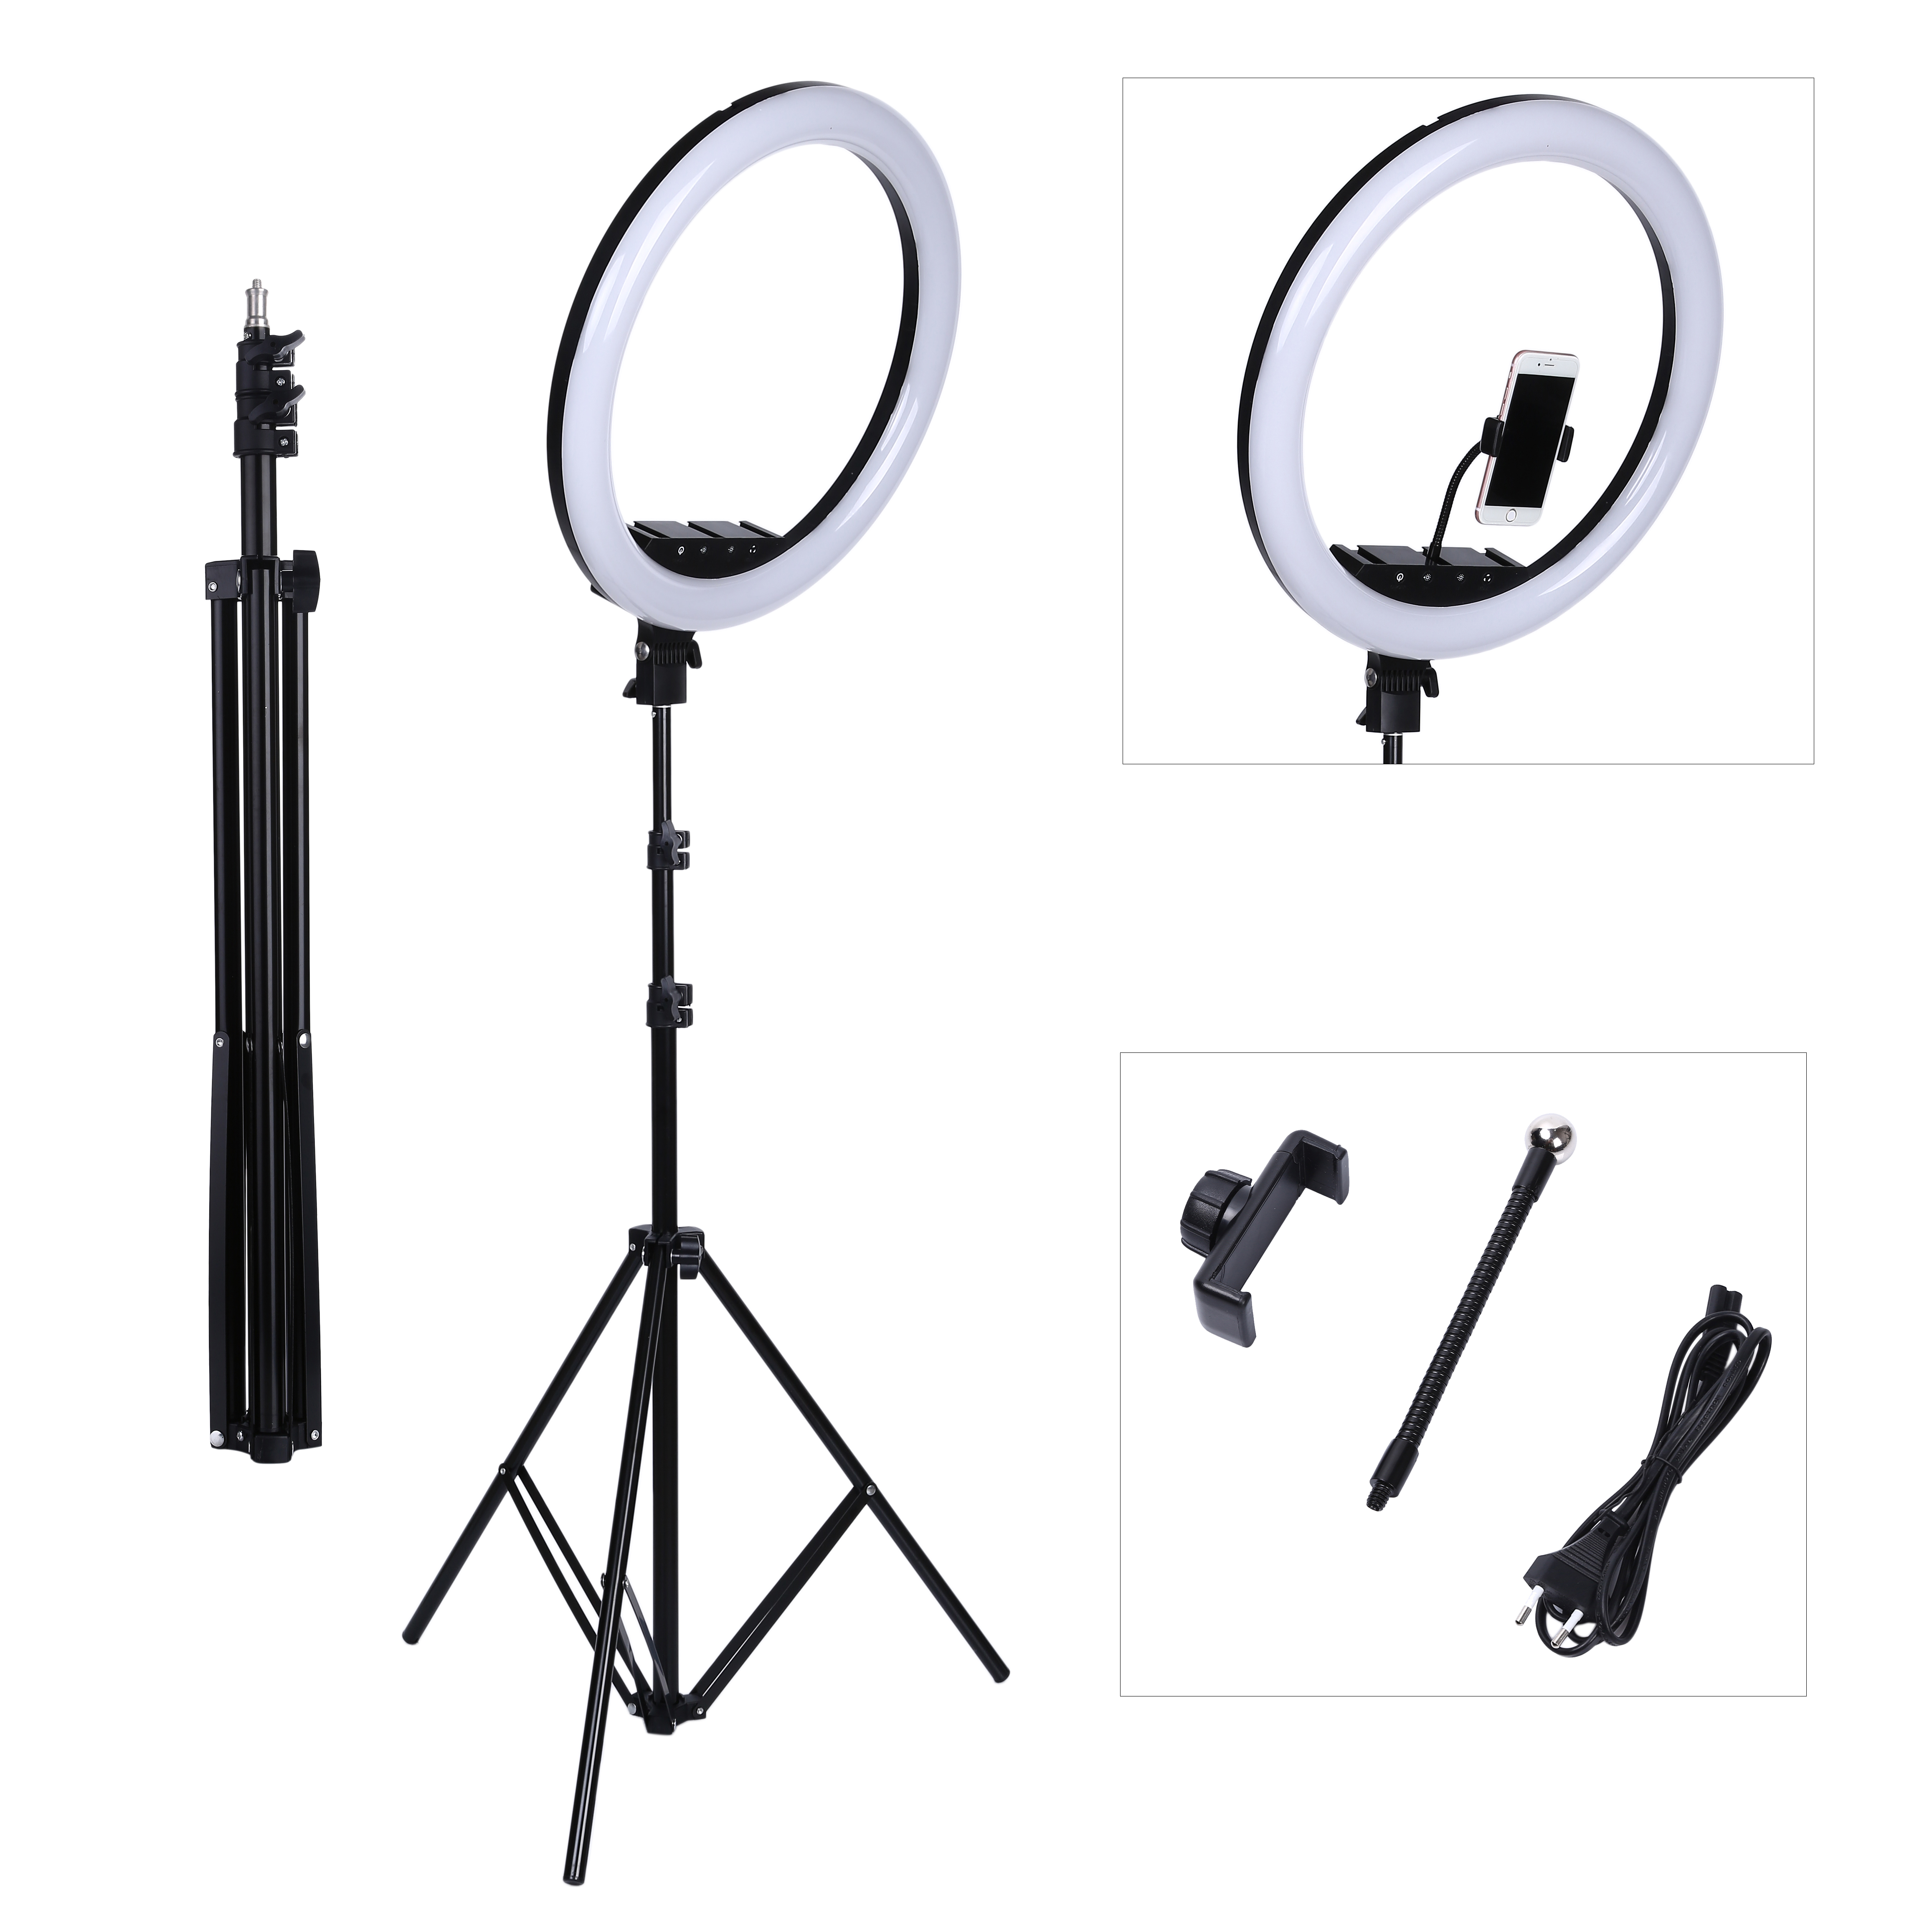 18 Inch Photo Studio lighting LED Ring Light Touch Screen Switch Photography Dimmable Ring Lamp With